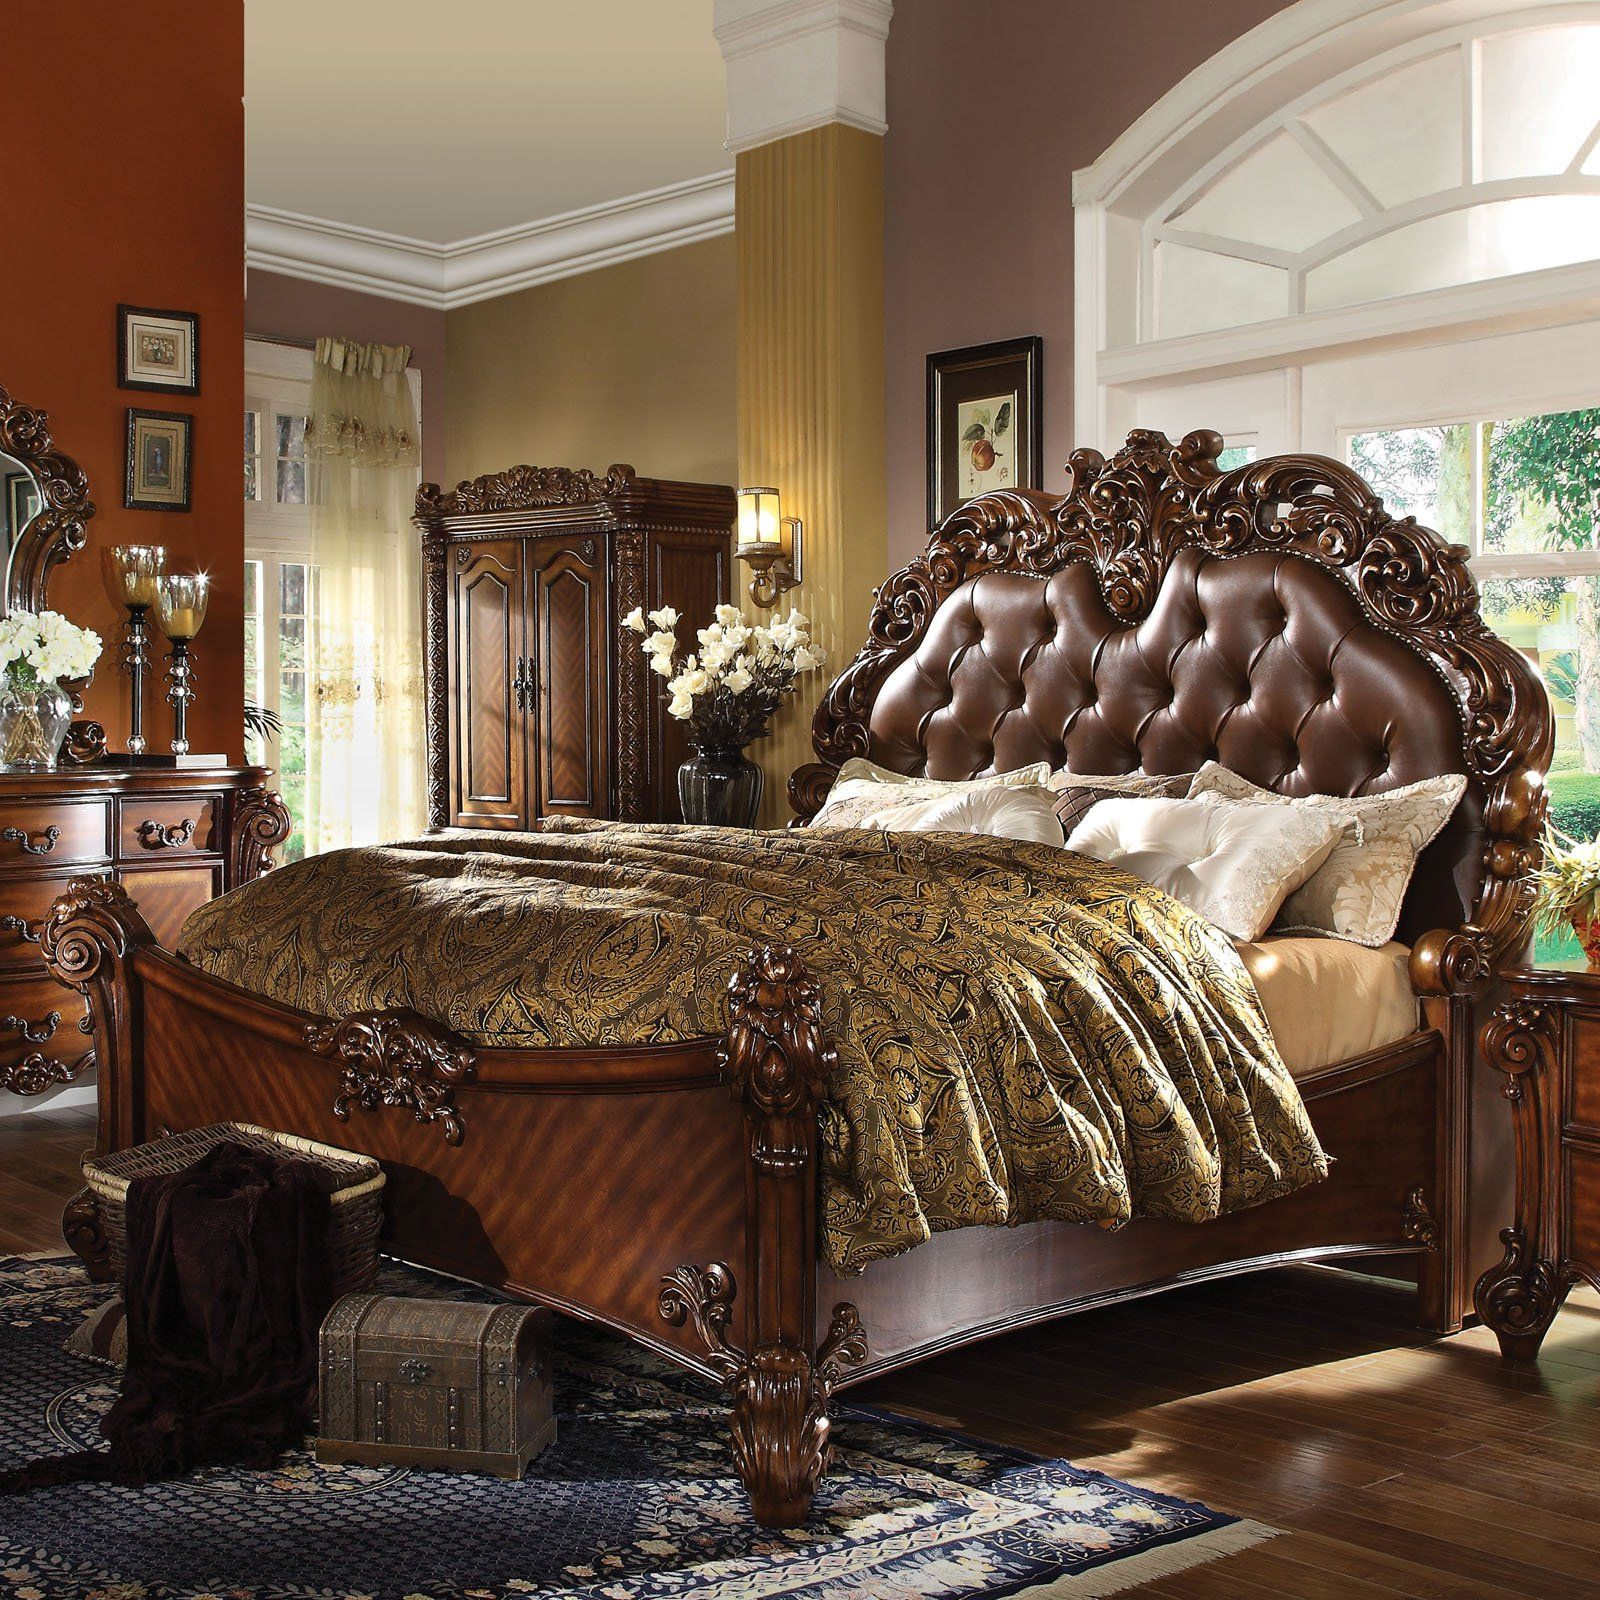 Acme Furniture Vendome Panel Bed Upholstered Panel Bed Furniture Panel Bed